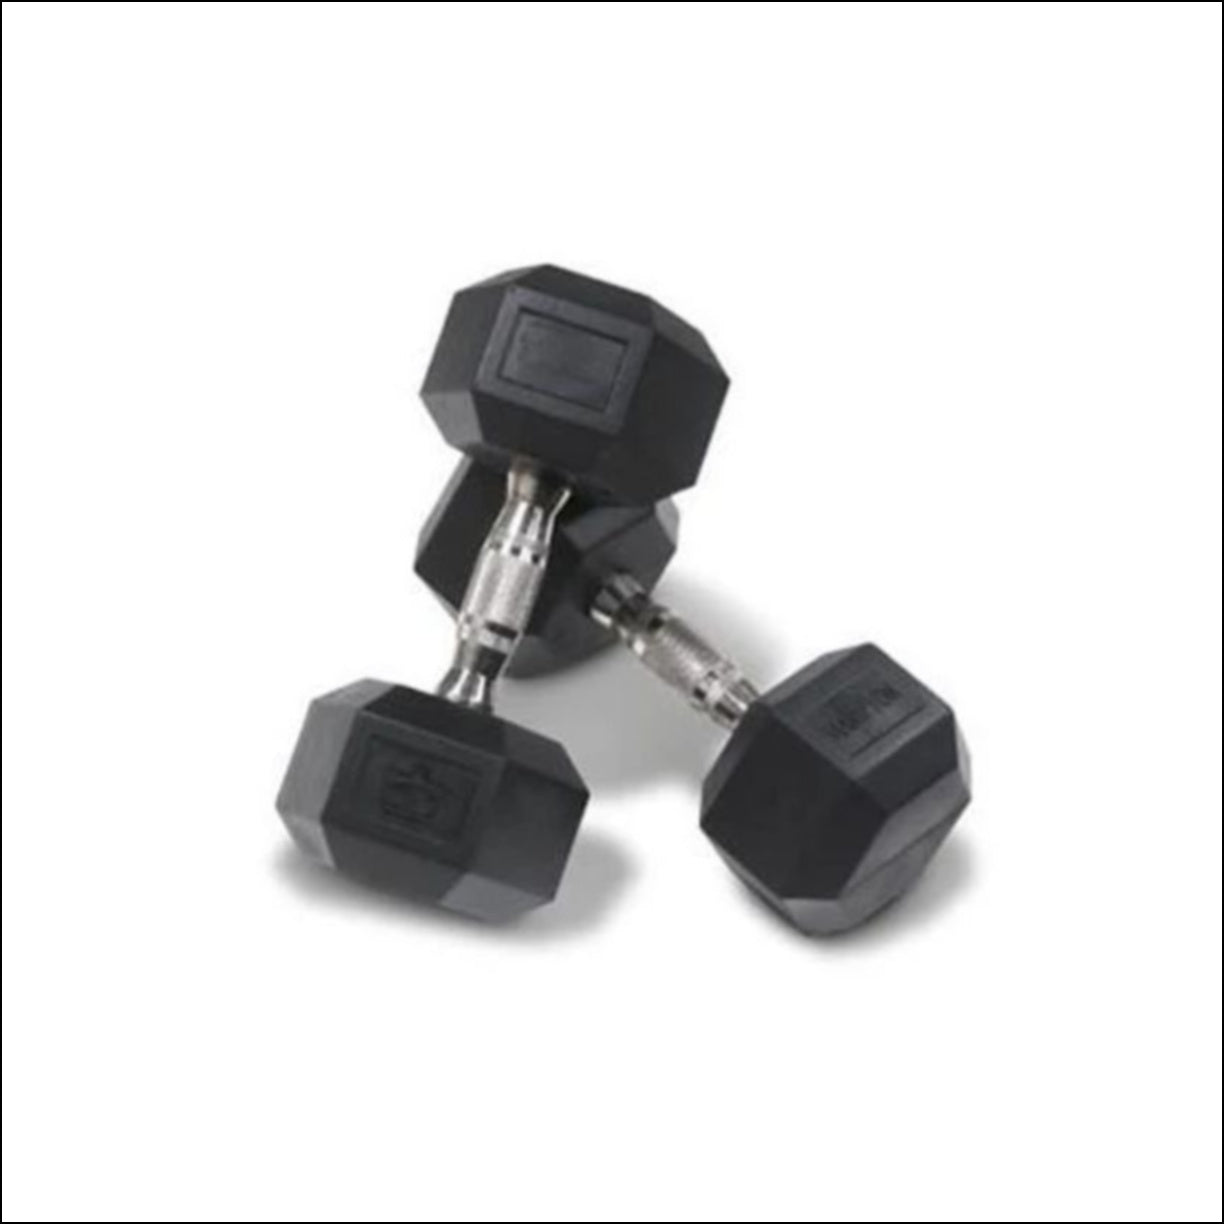 PAIR OF 7-KG RUBBER HEX DUMBBELLS  Muscle Motion Rubber coated hexagonal dumbbells with ergonomic handles are designed for increased comfort and improved durability. Rubber coating reduces noise improves life cycle of the product  (other finishes such as chrome and cast iron are subject to chipping and rust). Rubber coated dumbbells are also kinder on floor surfaces. The hexagonal shaped ends are designed to prevent the dumbbell from rolling on the floor or dumbbell rack.